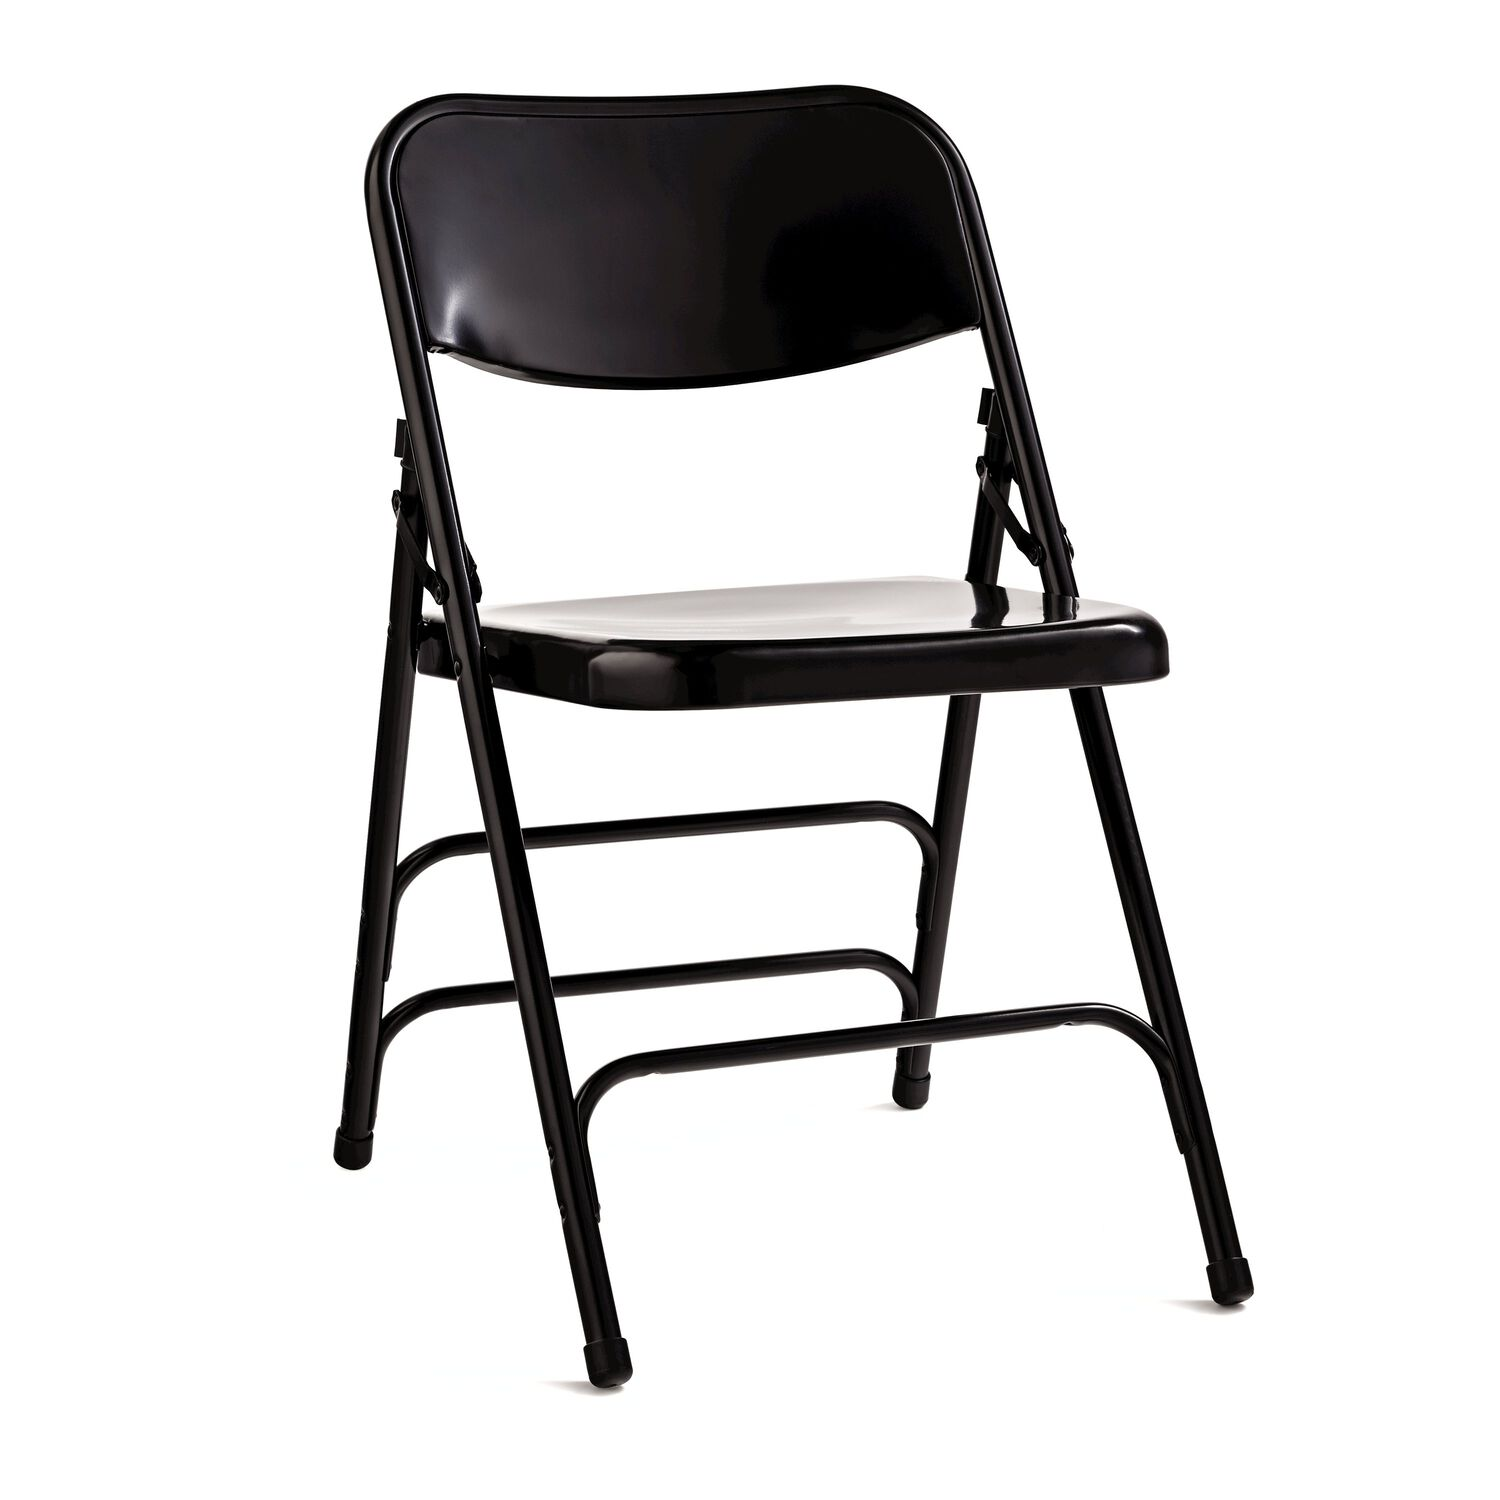 Samsonite Steel Folding Chair Case 4